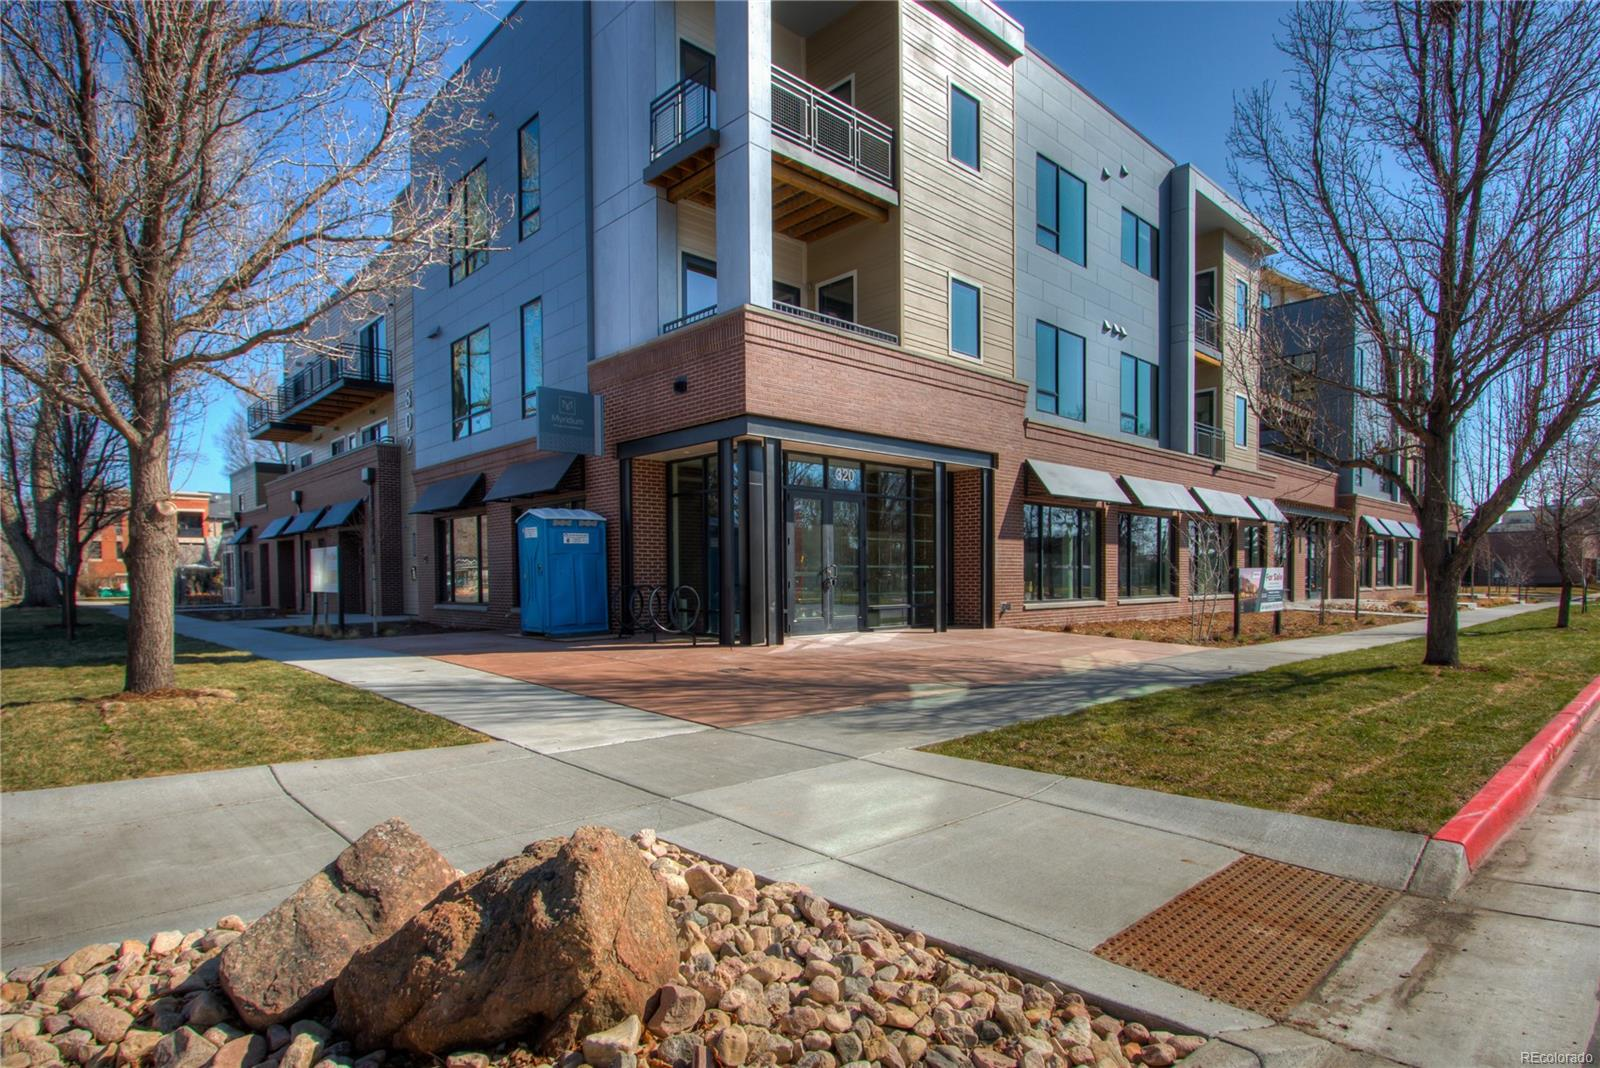 302 Meldrum Street #214, Fort Collins, CO 80521 - Fort Collins, CO real estate listing